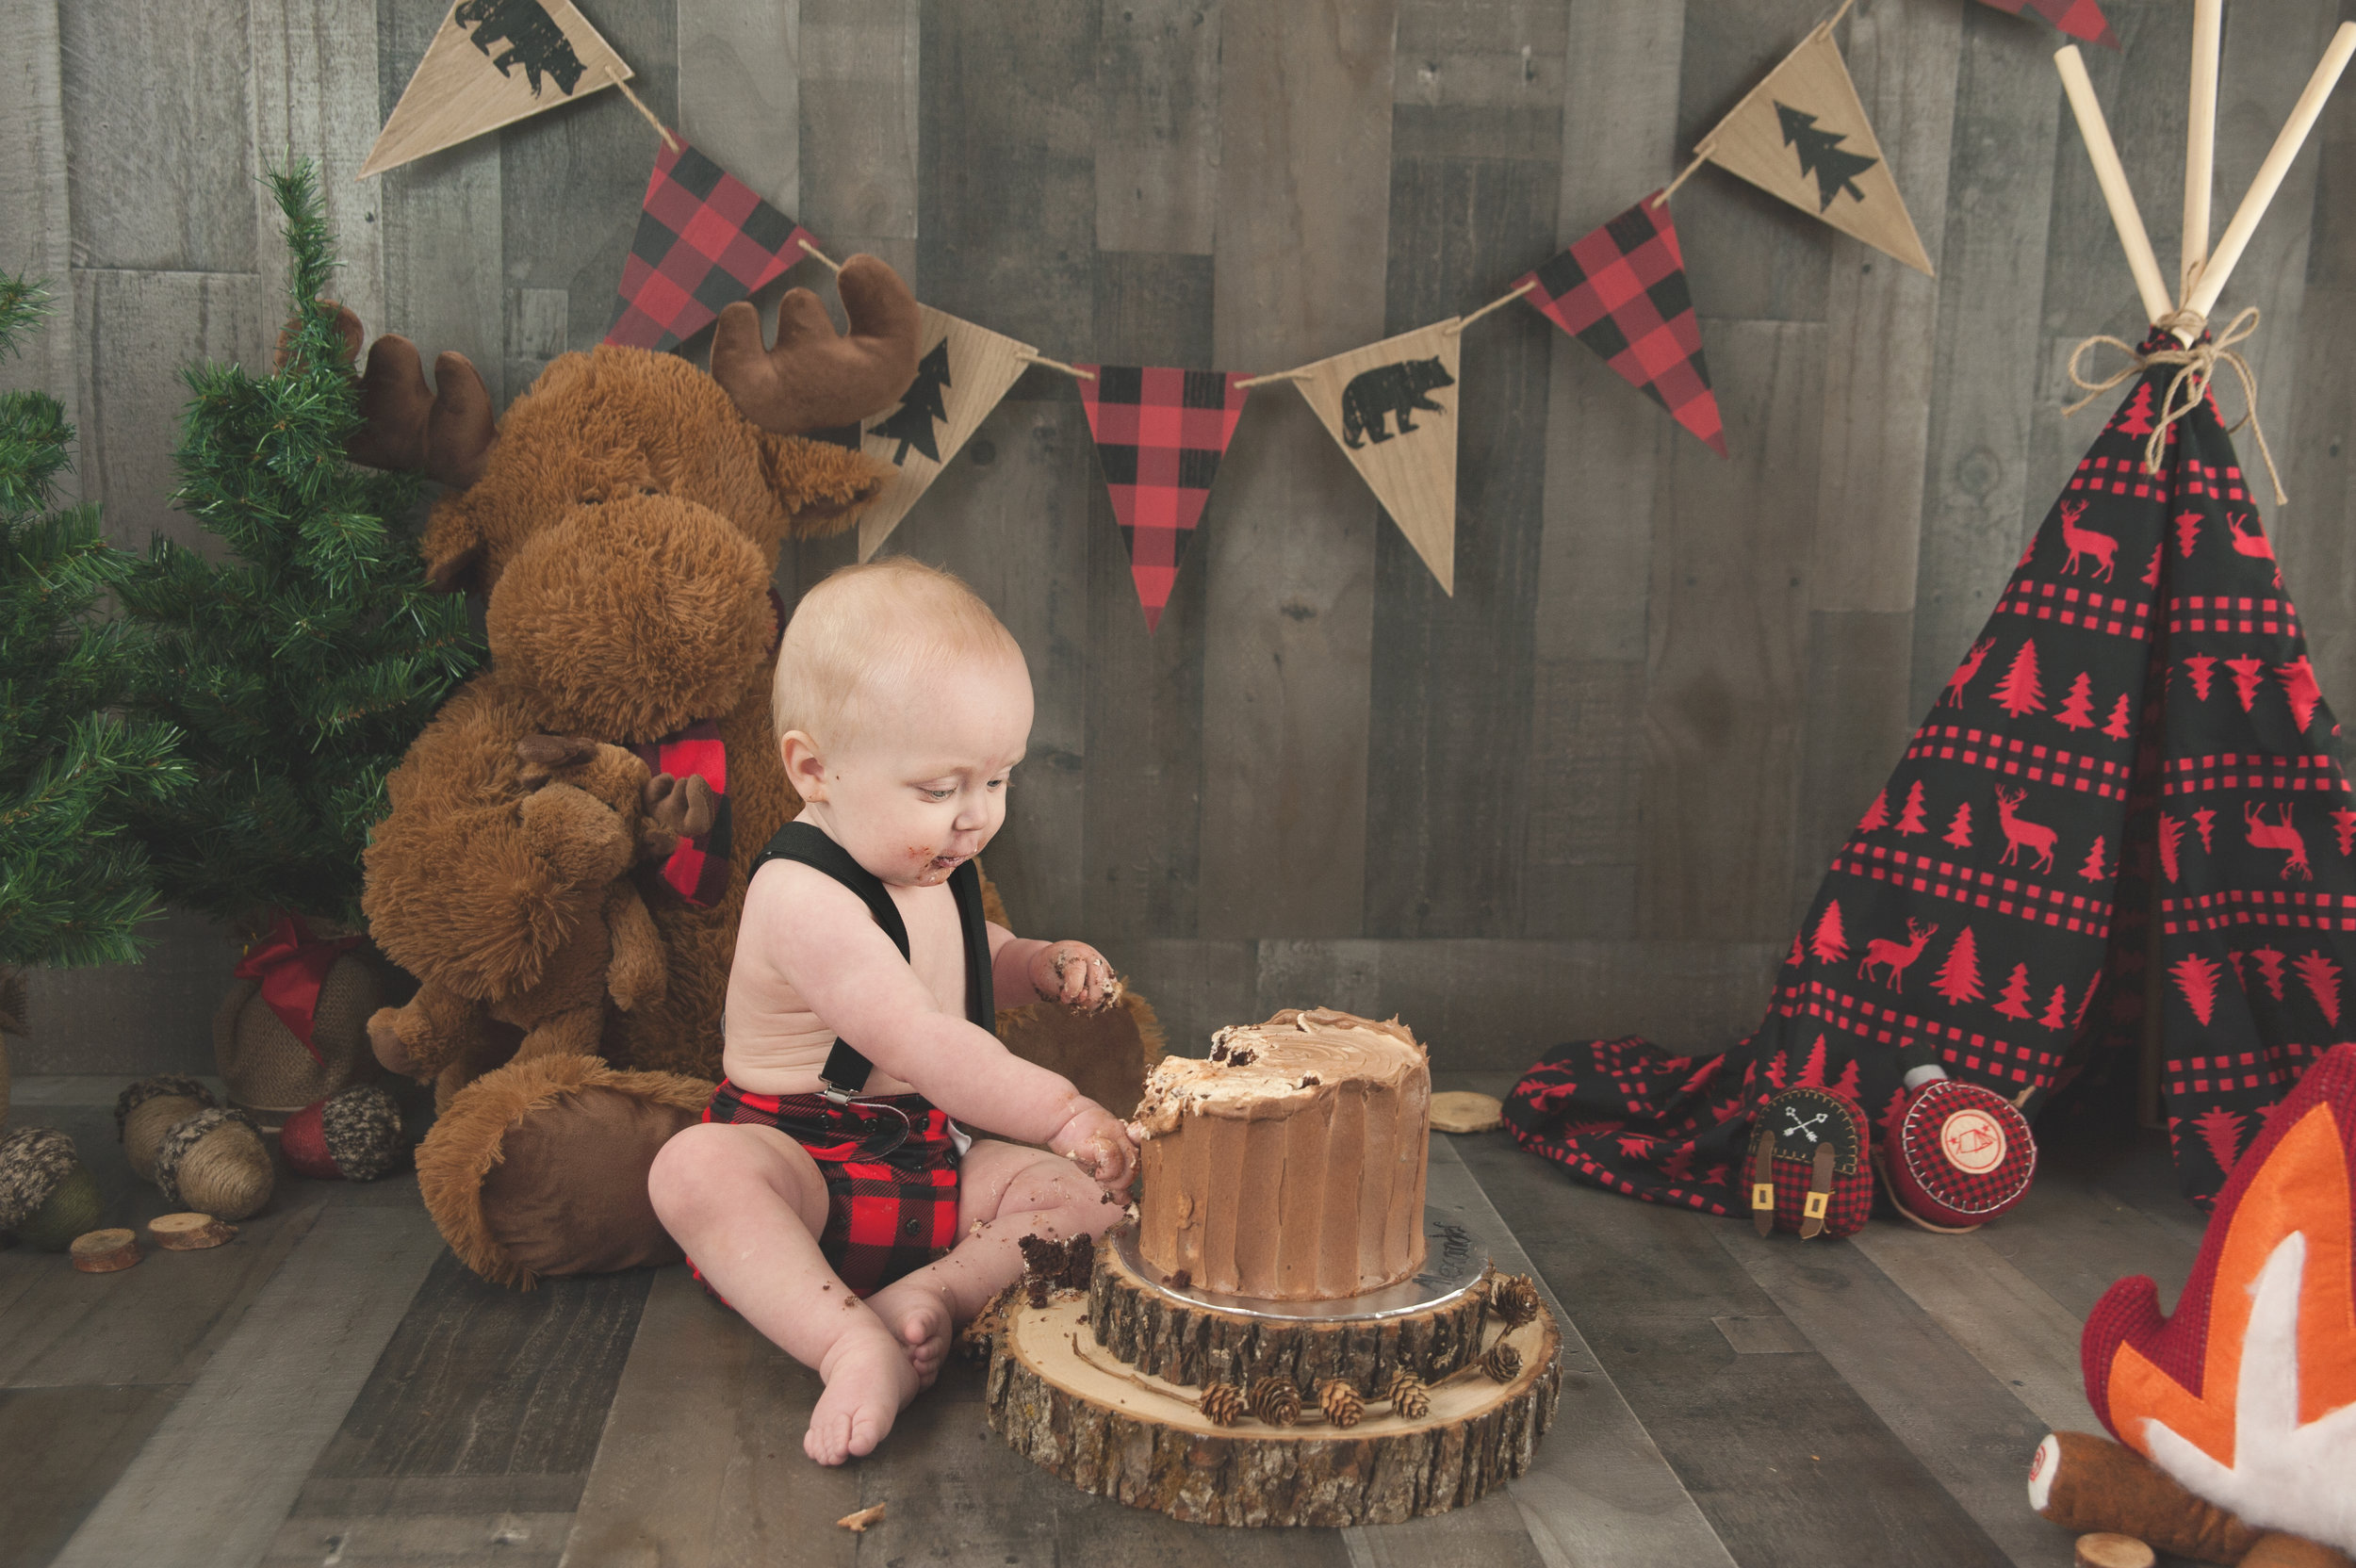 End the first year with a one of a kind Cake Smash Session!